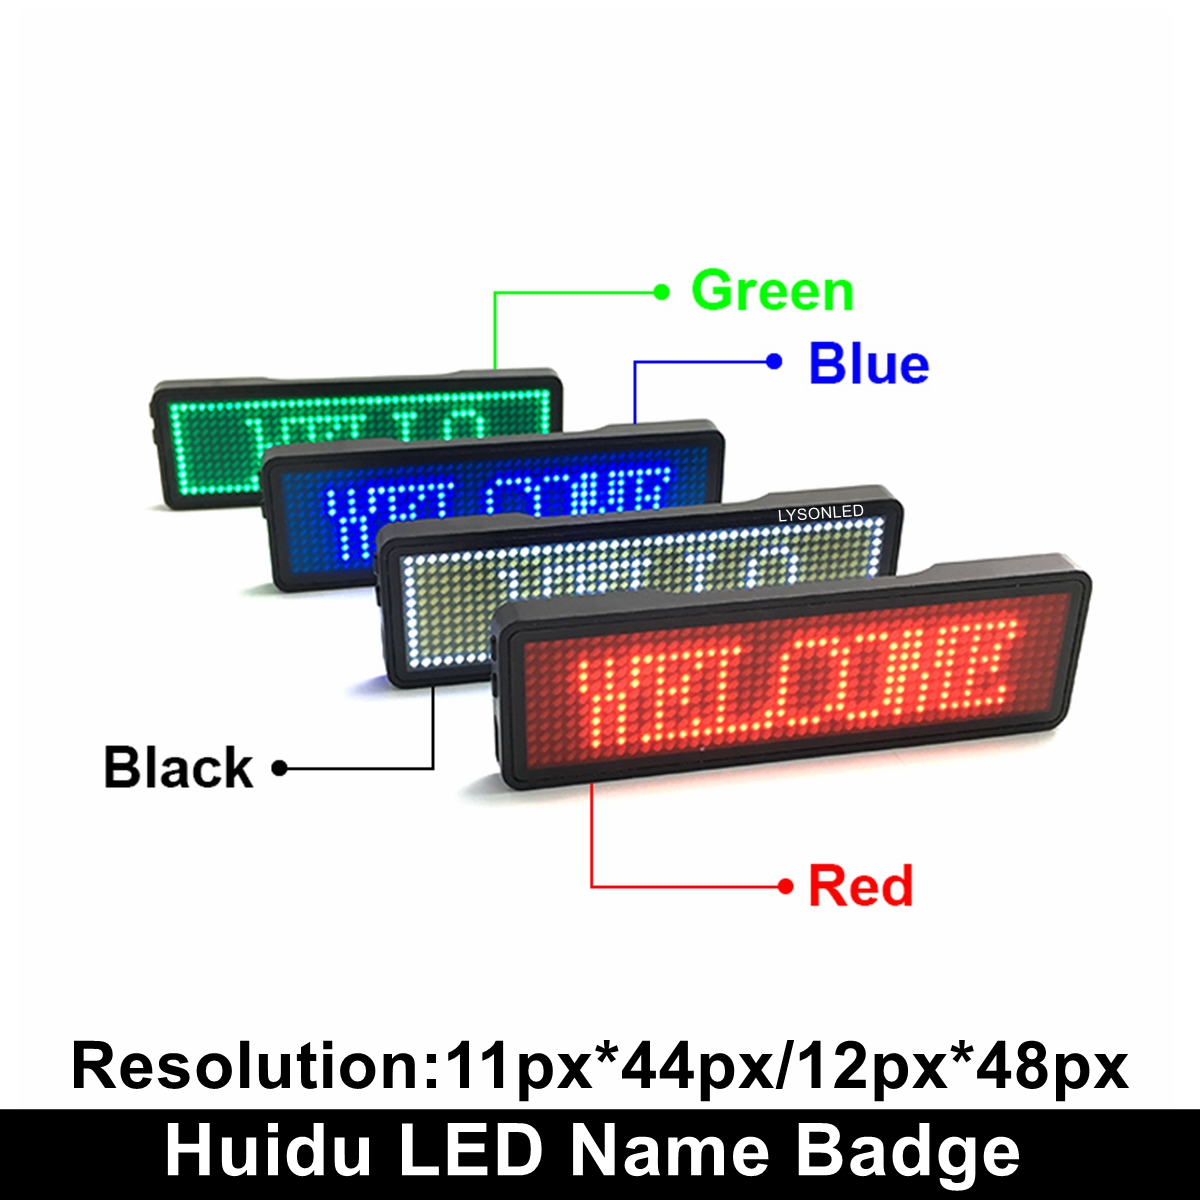 LYSONLED Red Blue Green White Rechargeable Led Name Badge 44x11 48x12 Dots Single Color Scrolling Message Tag For Event